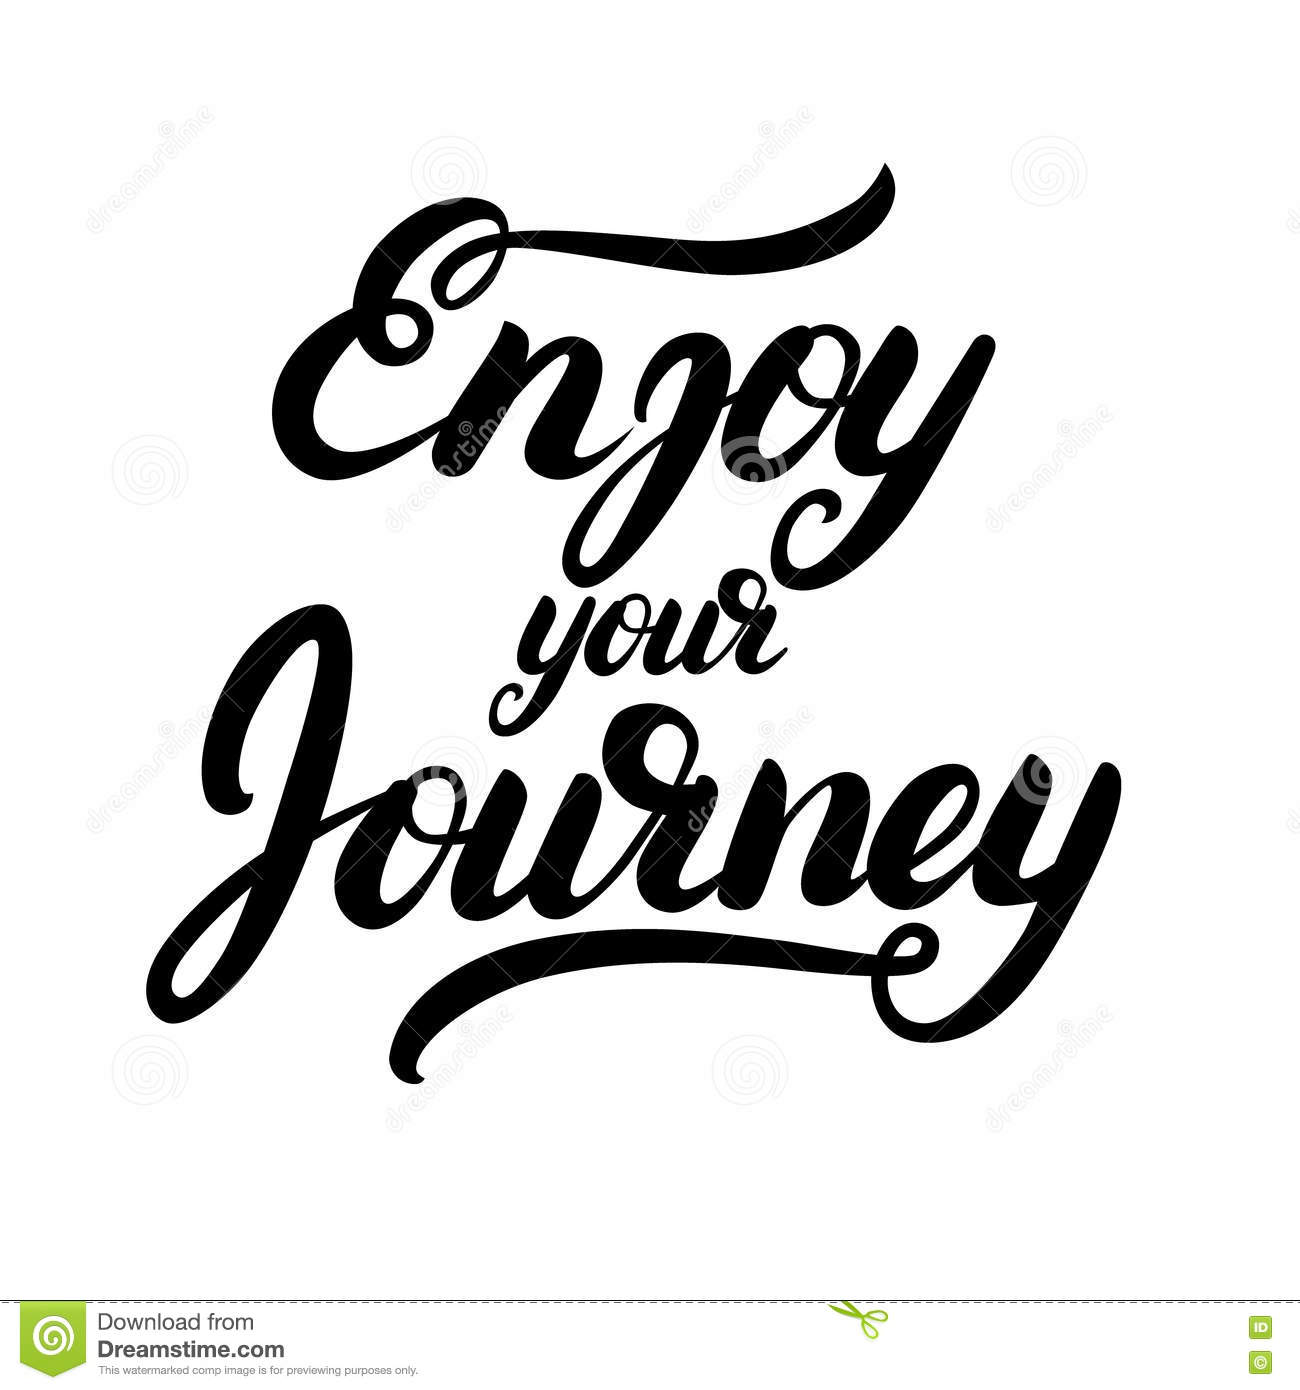 Enjoy your journey hand written calligraphy lettering